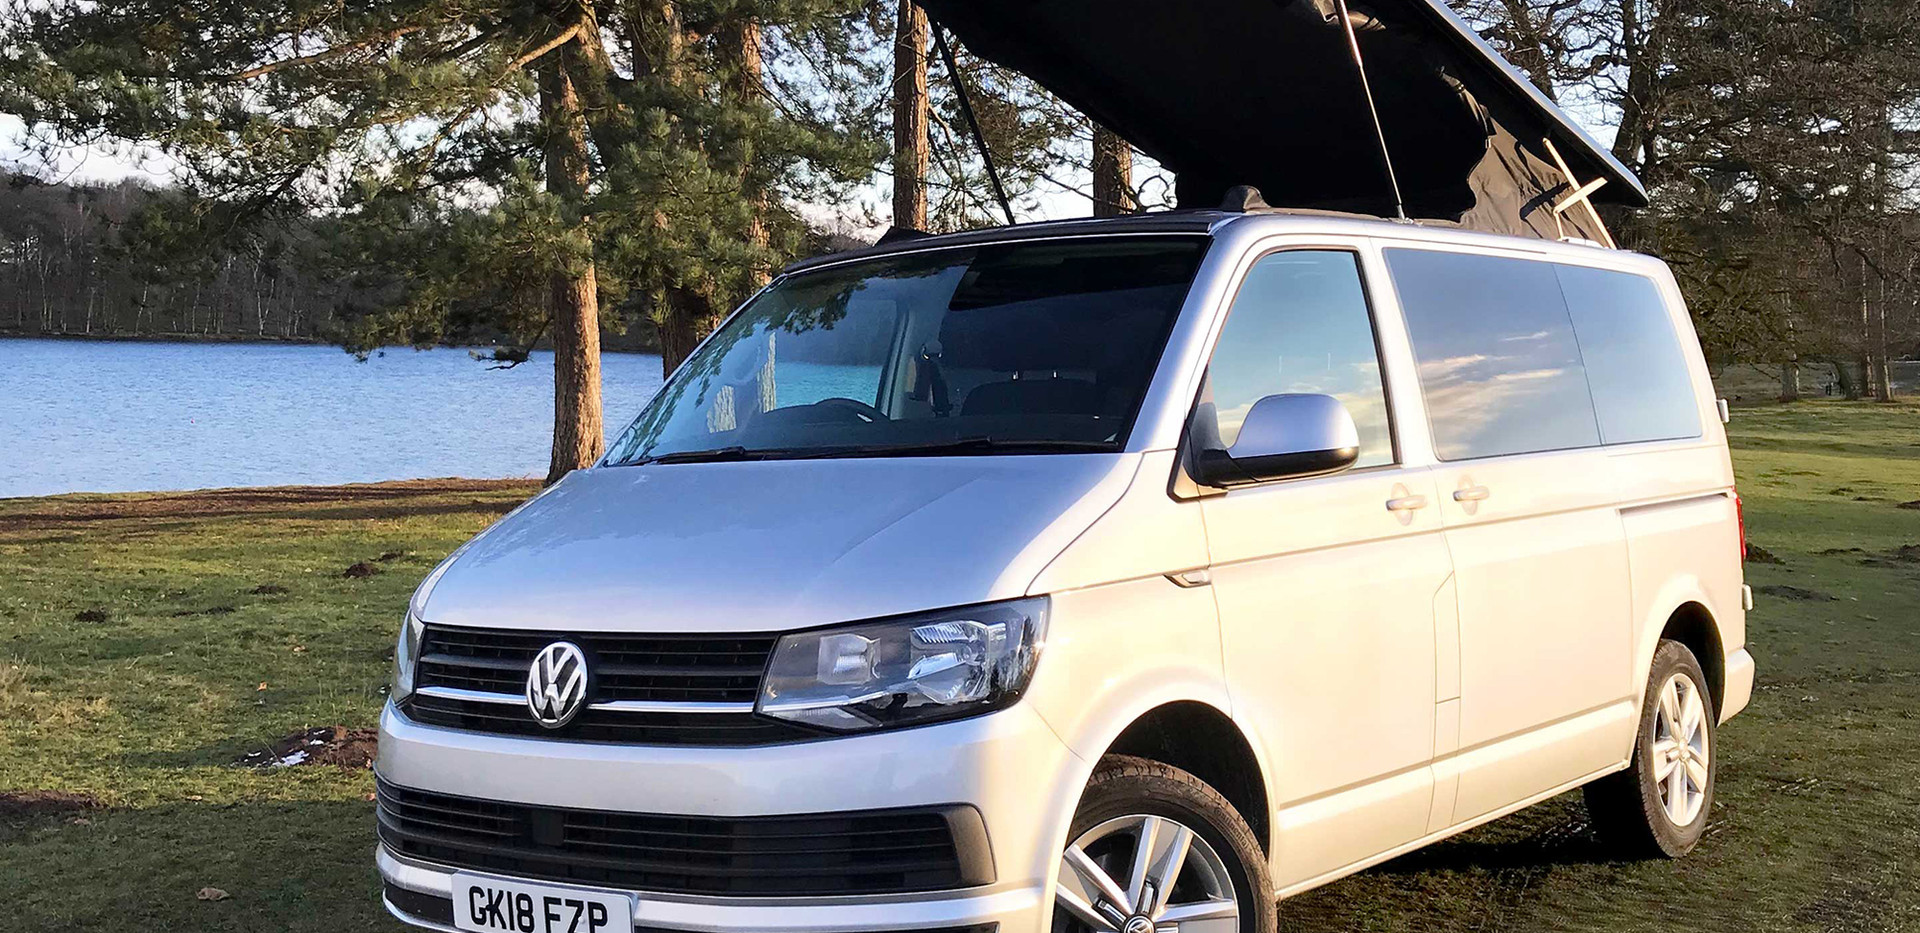 Natural Born Campers. Camper van conversions in South Manchester. Volkswagen T6 Transporter long wheelbase camper van.